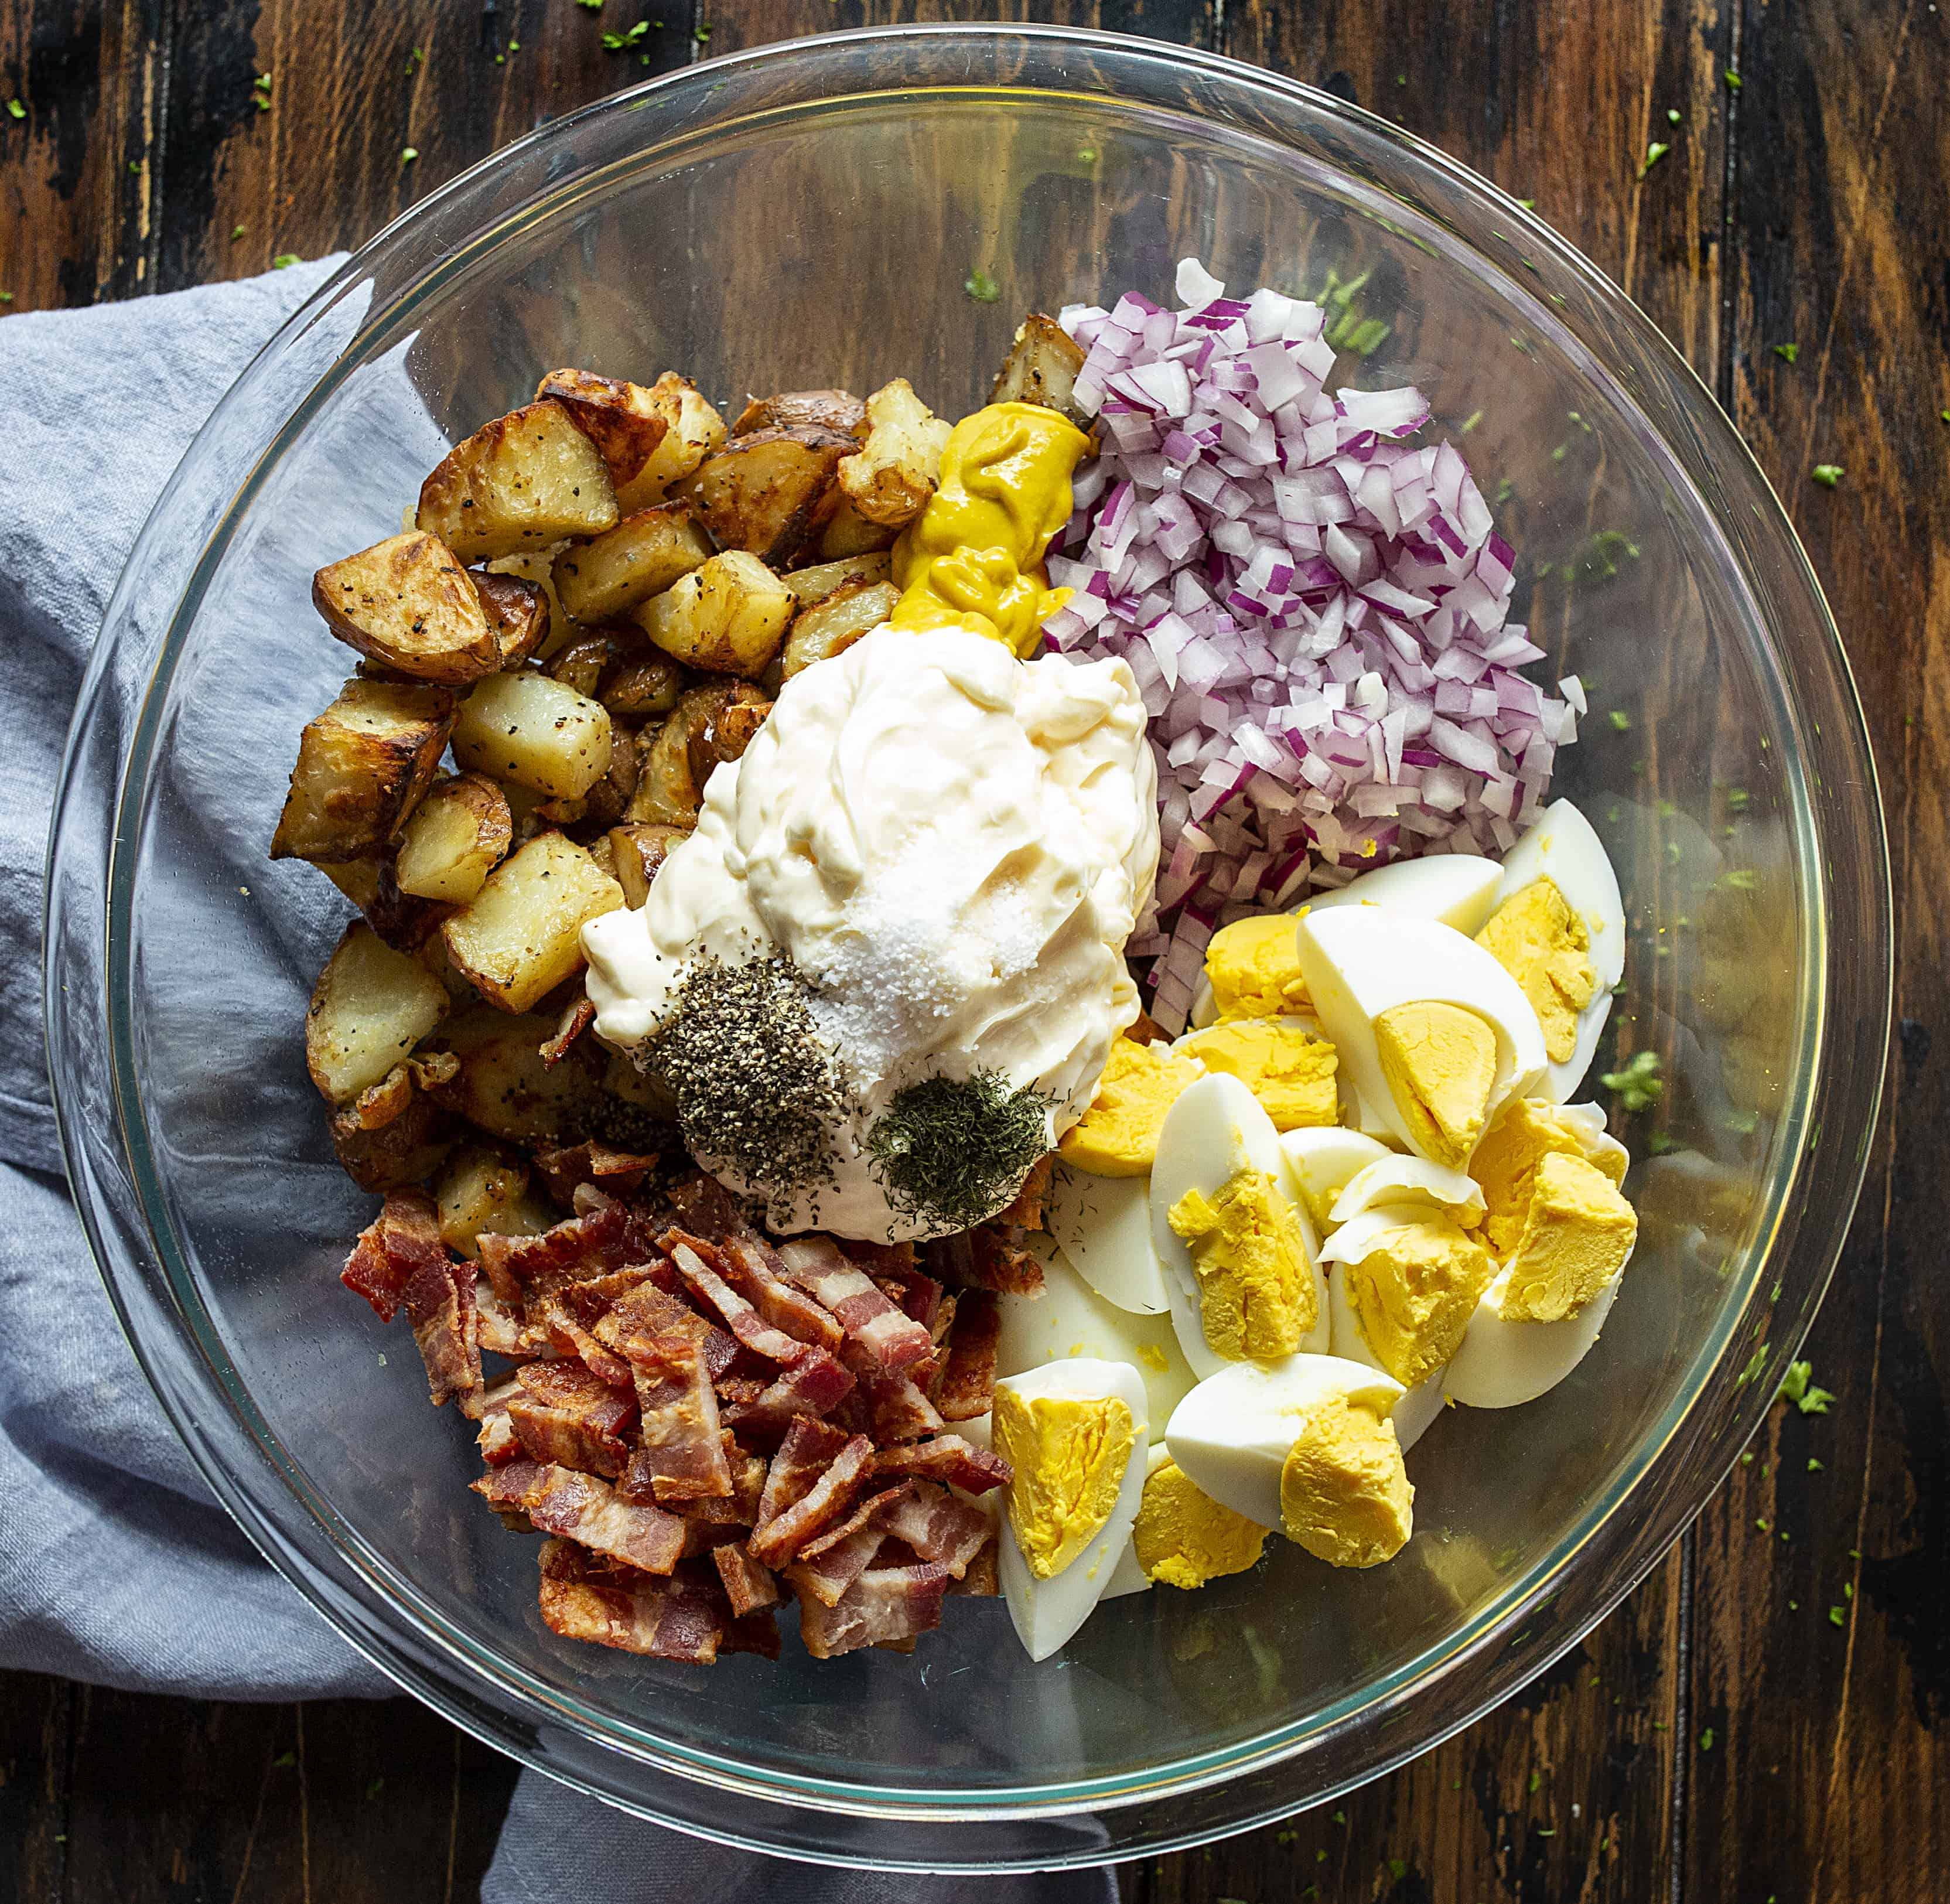 Ingredients for Roasted Potato Salad